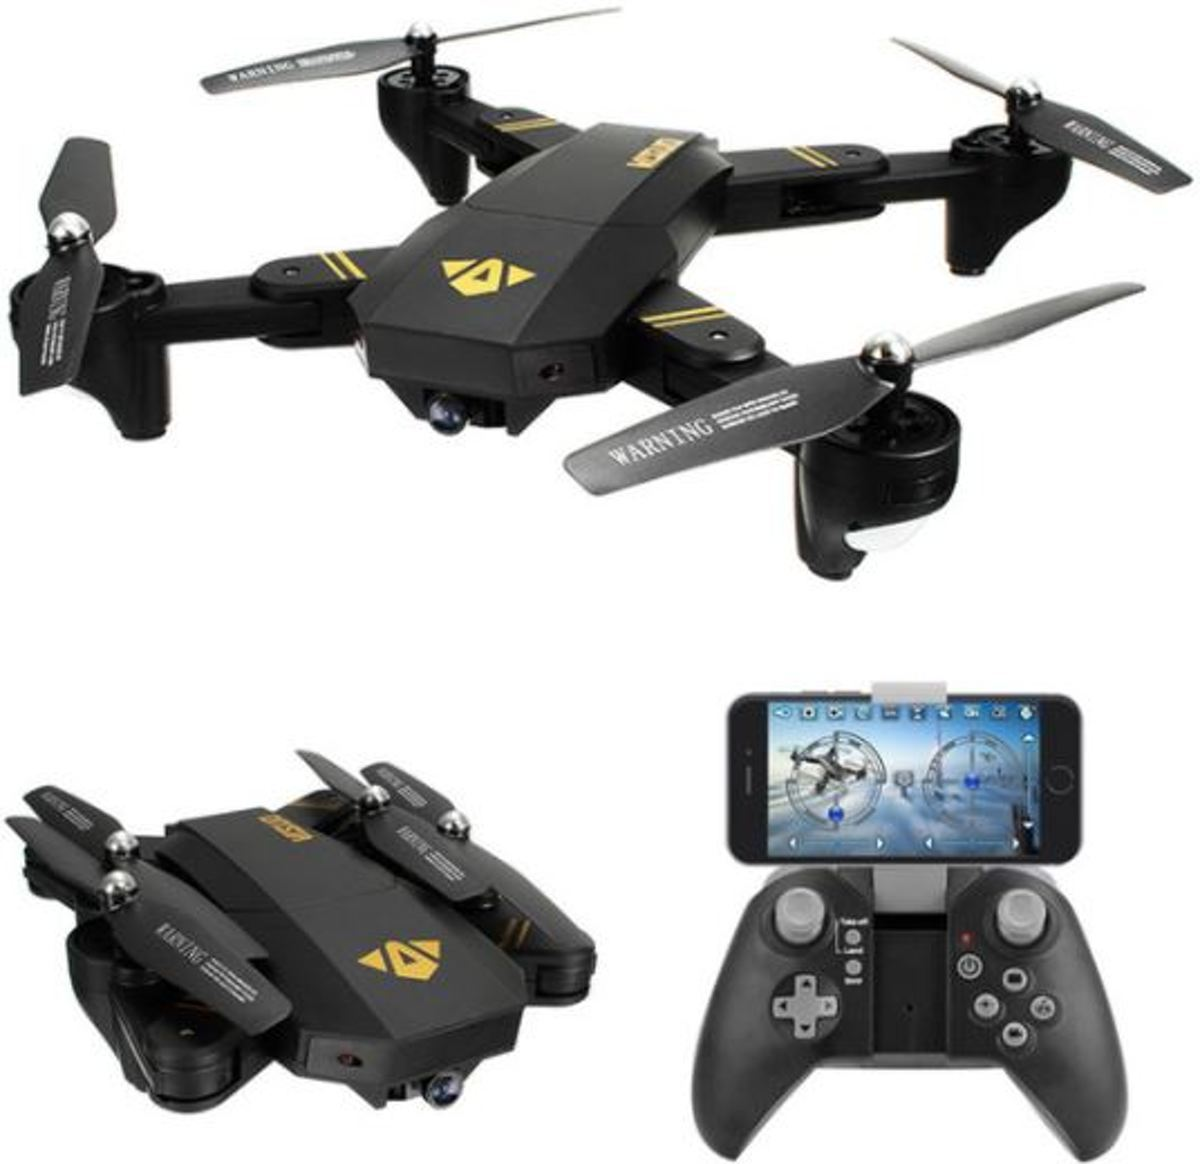 RC drone XS809H-W-HD-G (inclusief 3 batterijen) met FPV Wifi met Wide Angle HD camera (quadcopter)